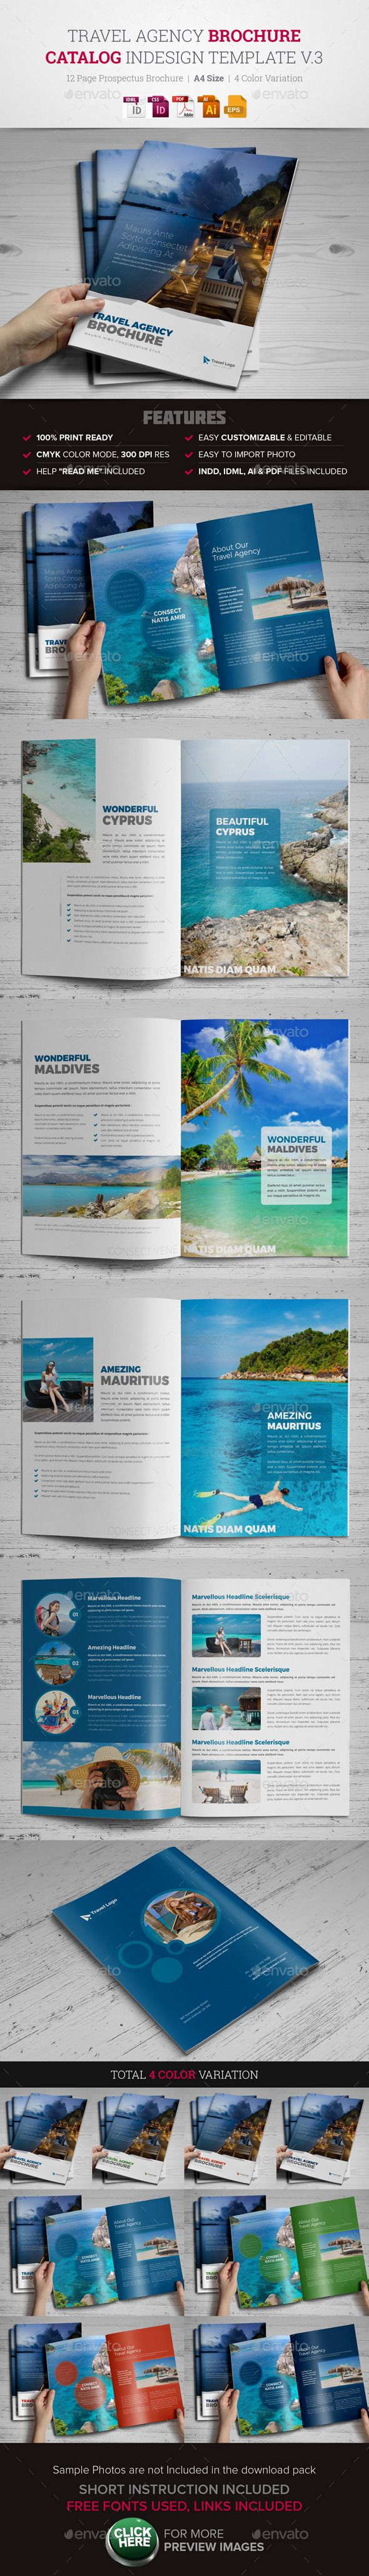 Travel Agency Brochure Catalog InDesign Template #design Download: http://graphicriver.net/item/travel-agency-brochure-catalog-indesign-v3-/12679585?ref=ksioks